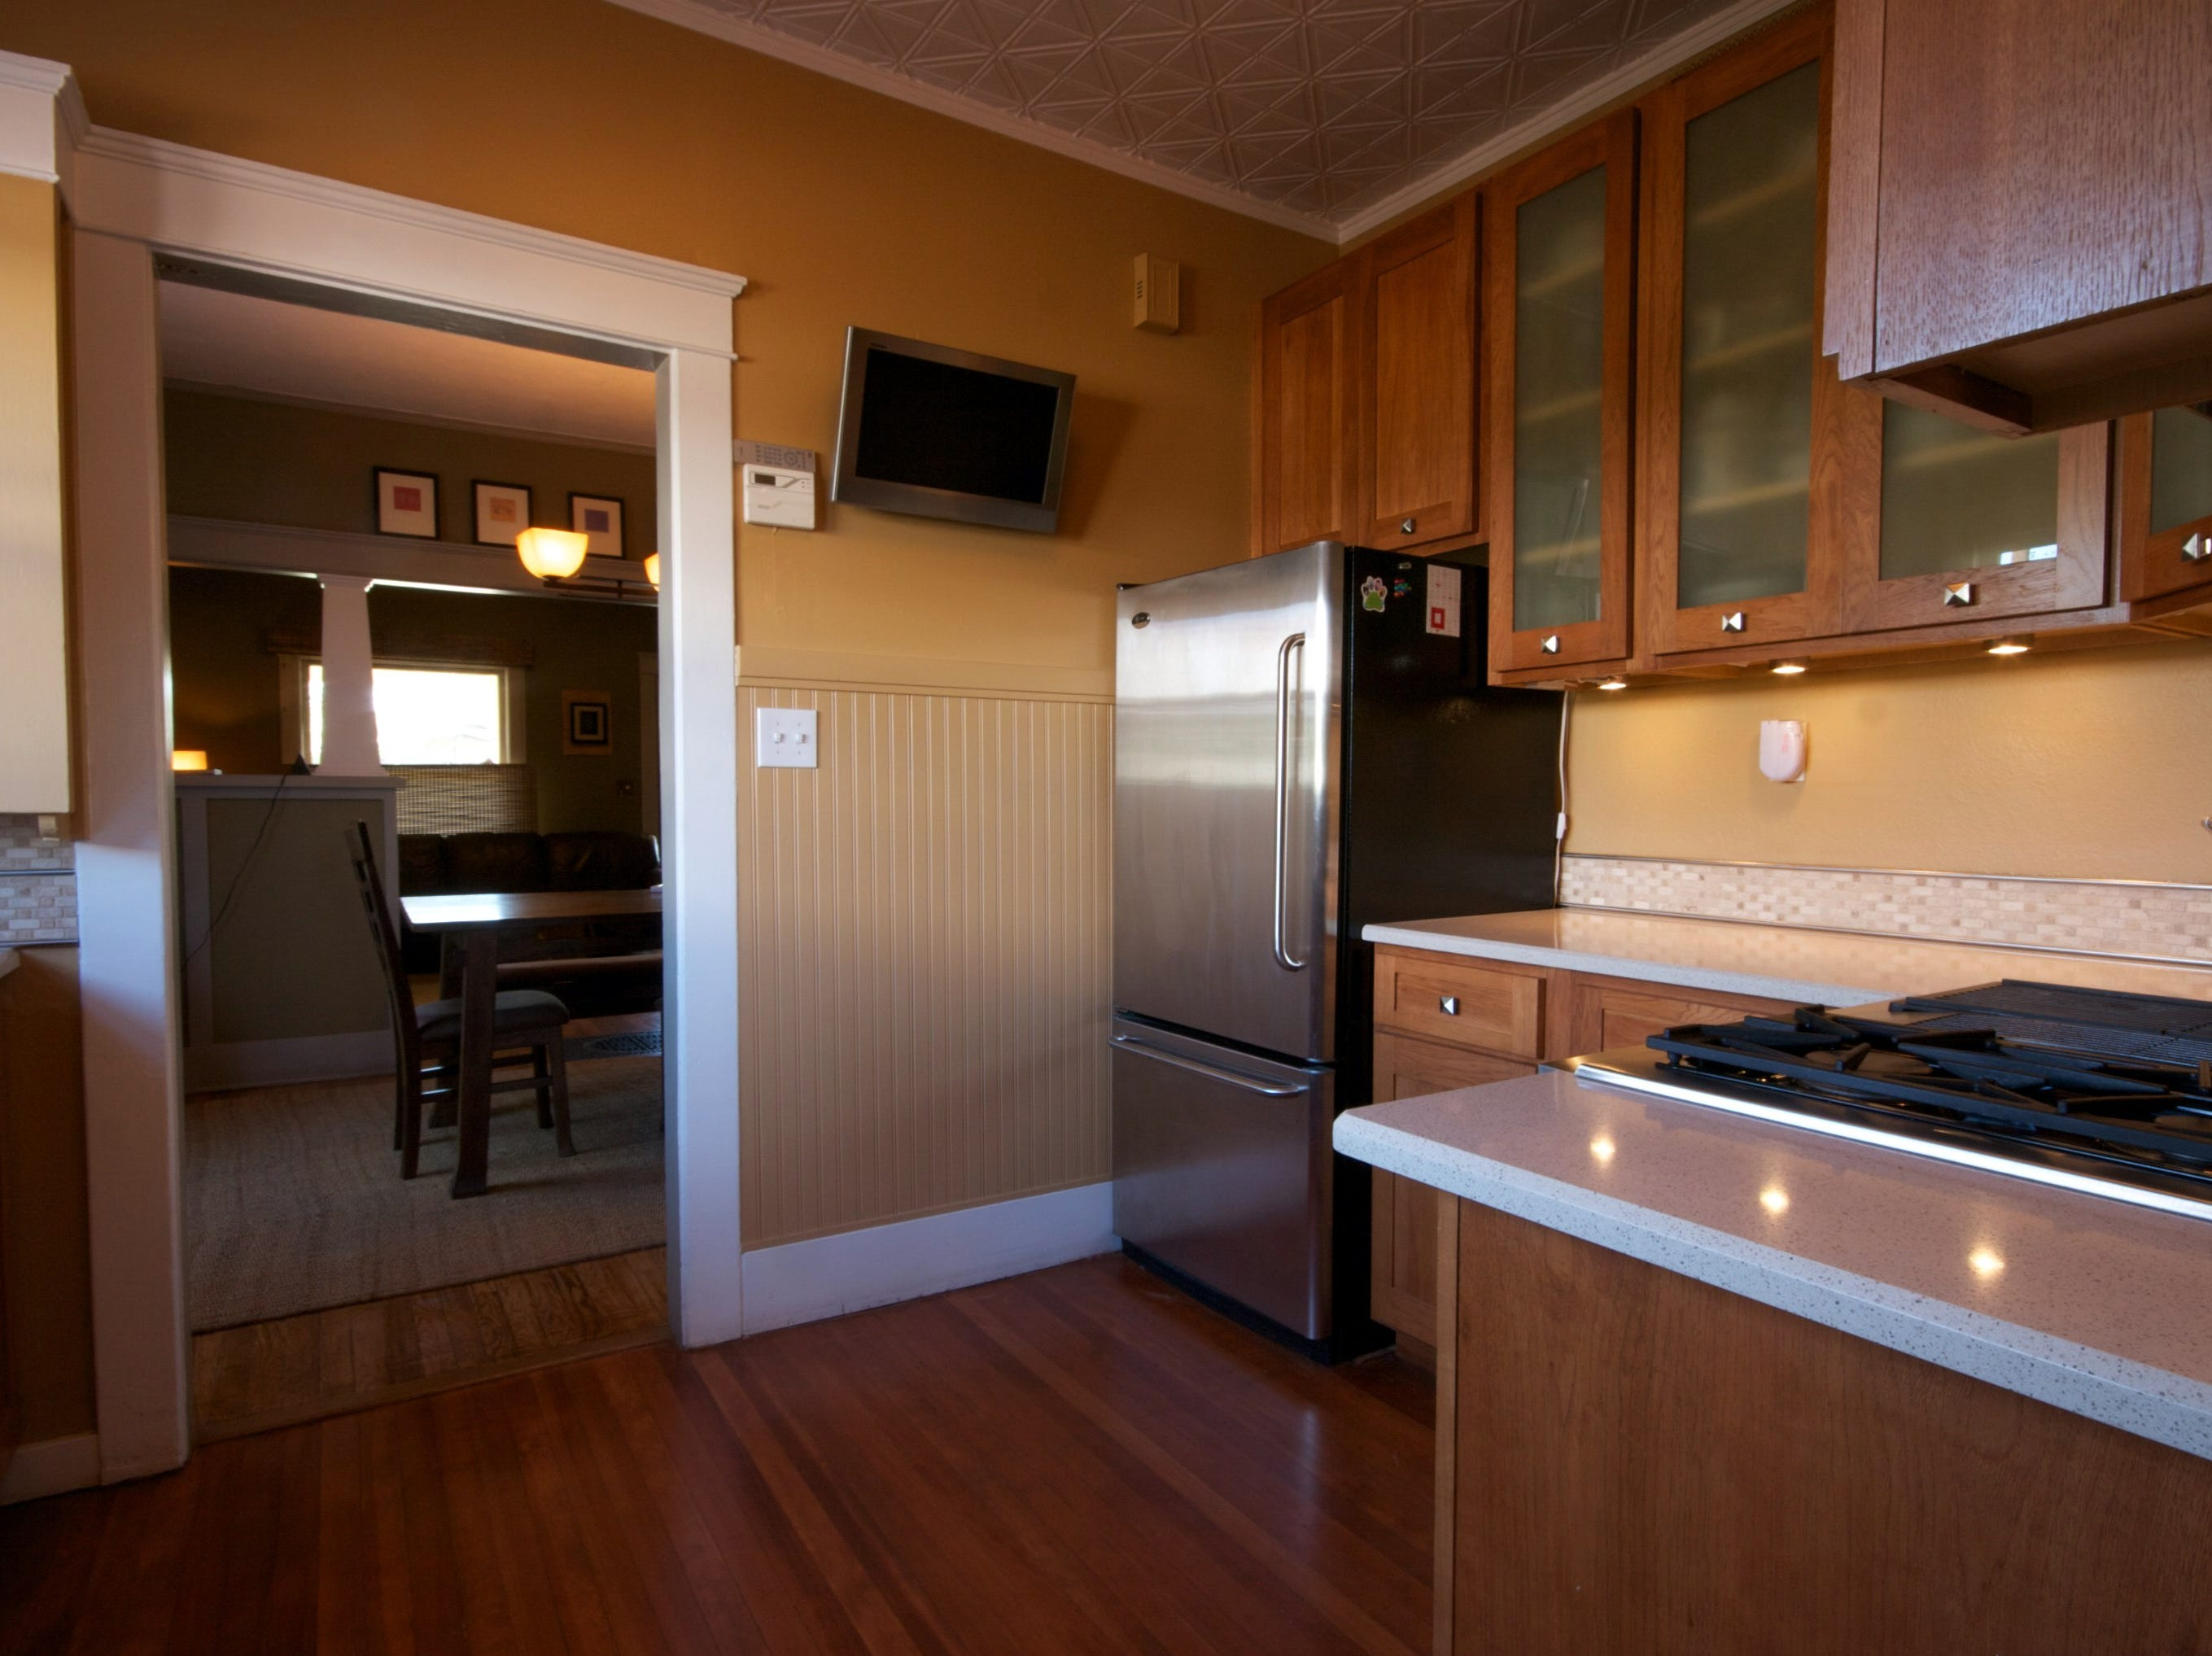 Part of the kitchen remodel included making space for a wall-mounted television.